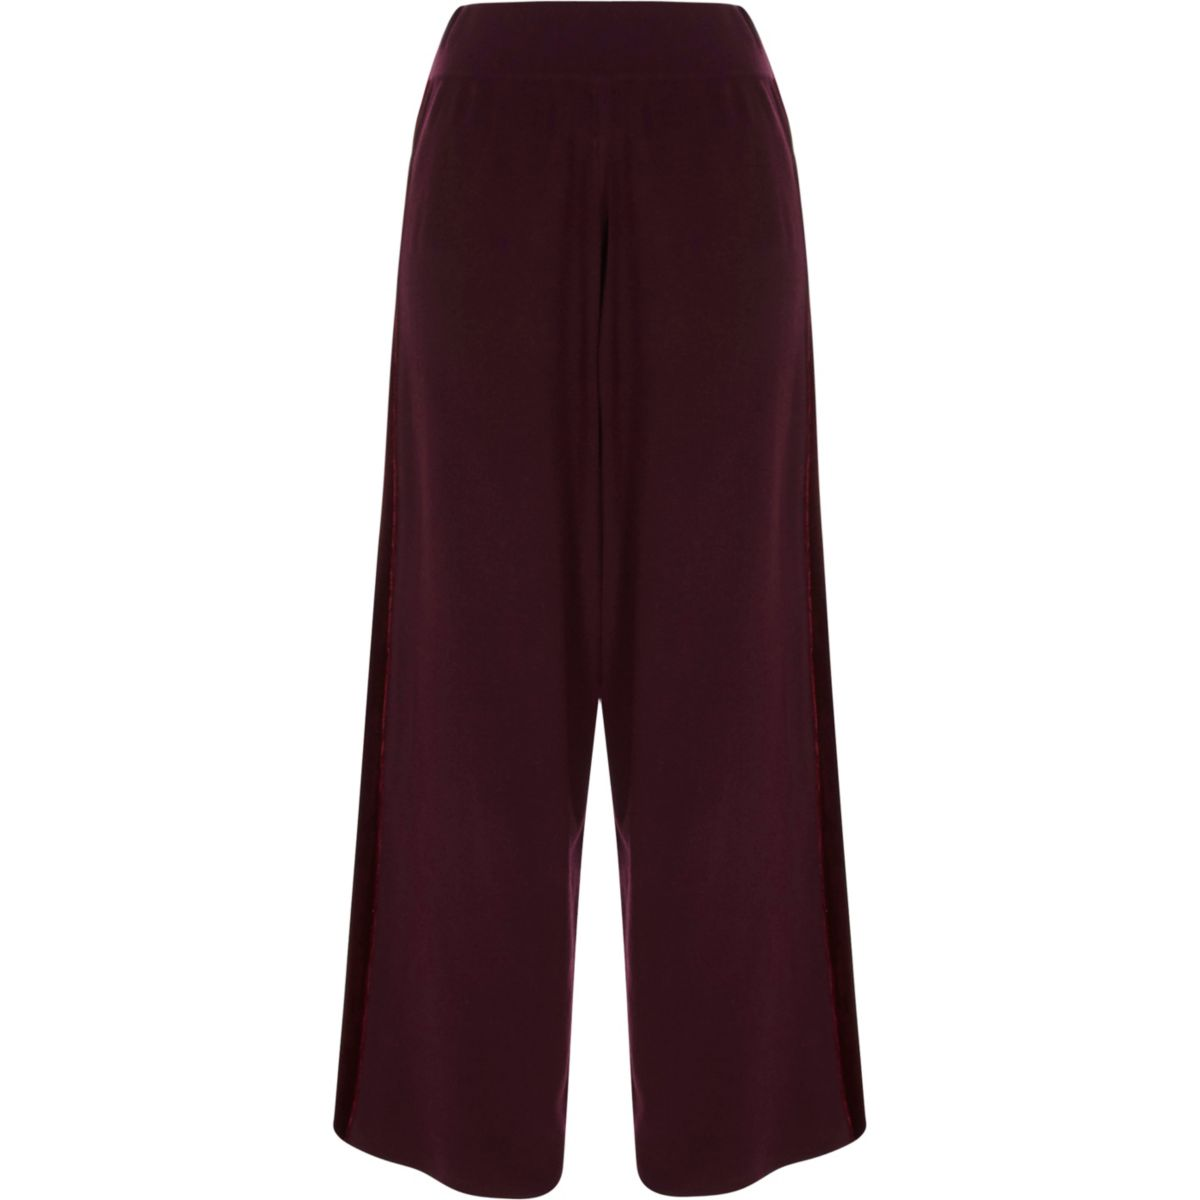 Burgundy wide leg velvet panel knit trousers